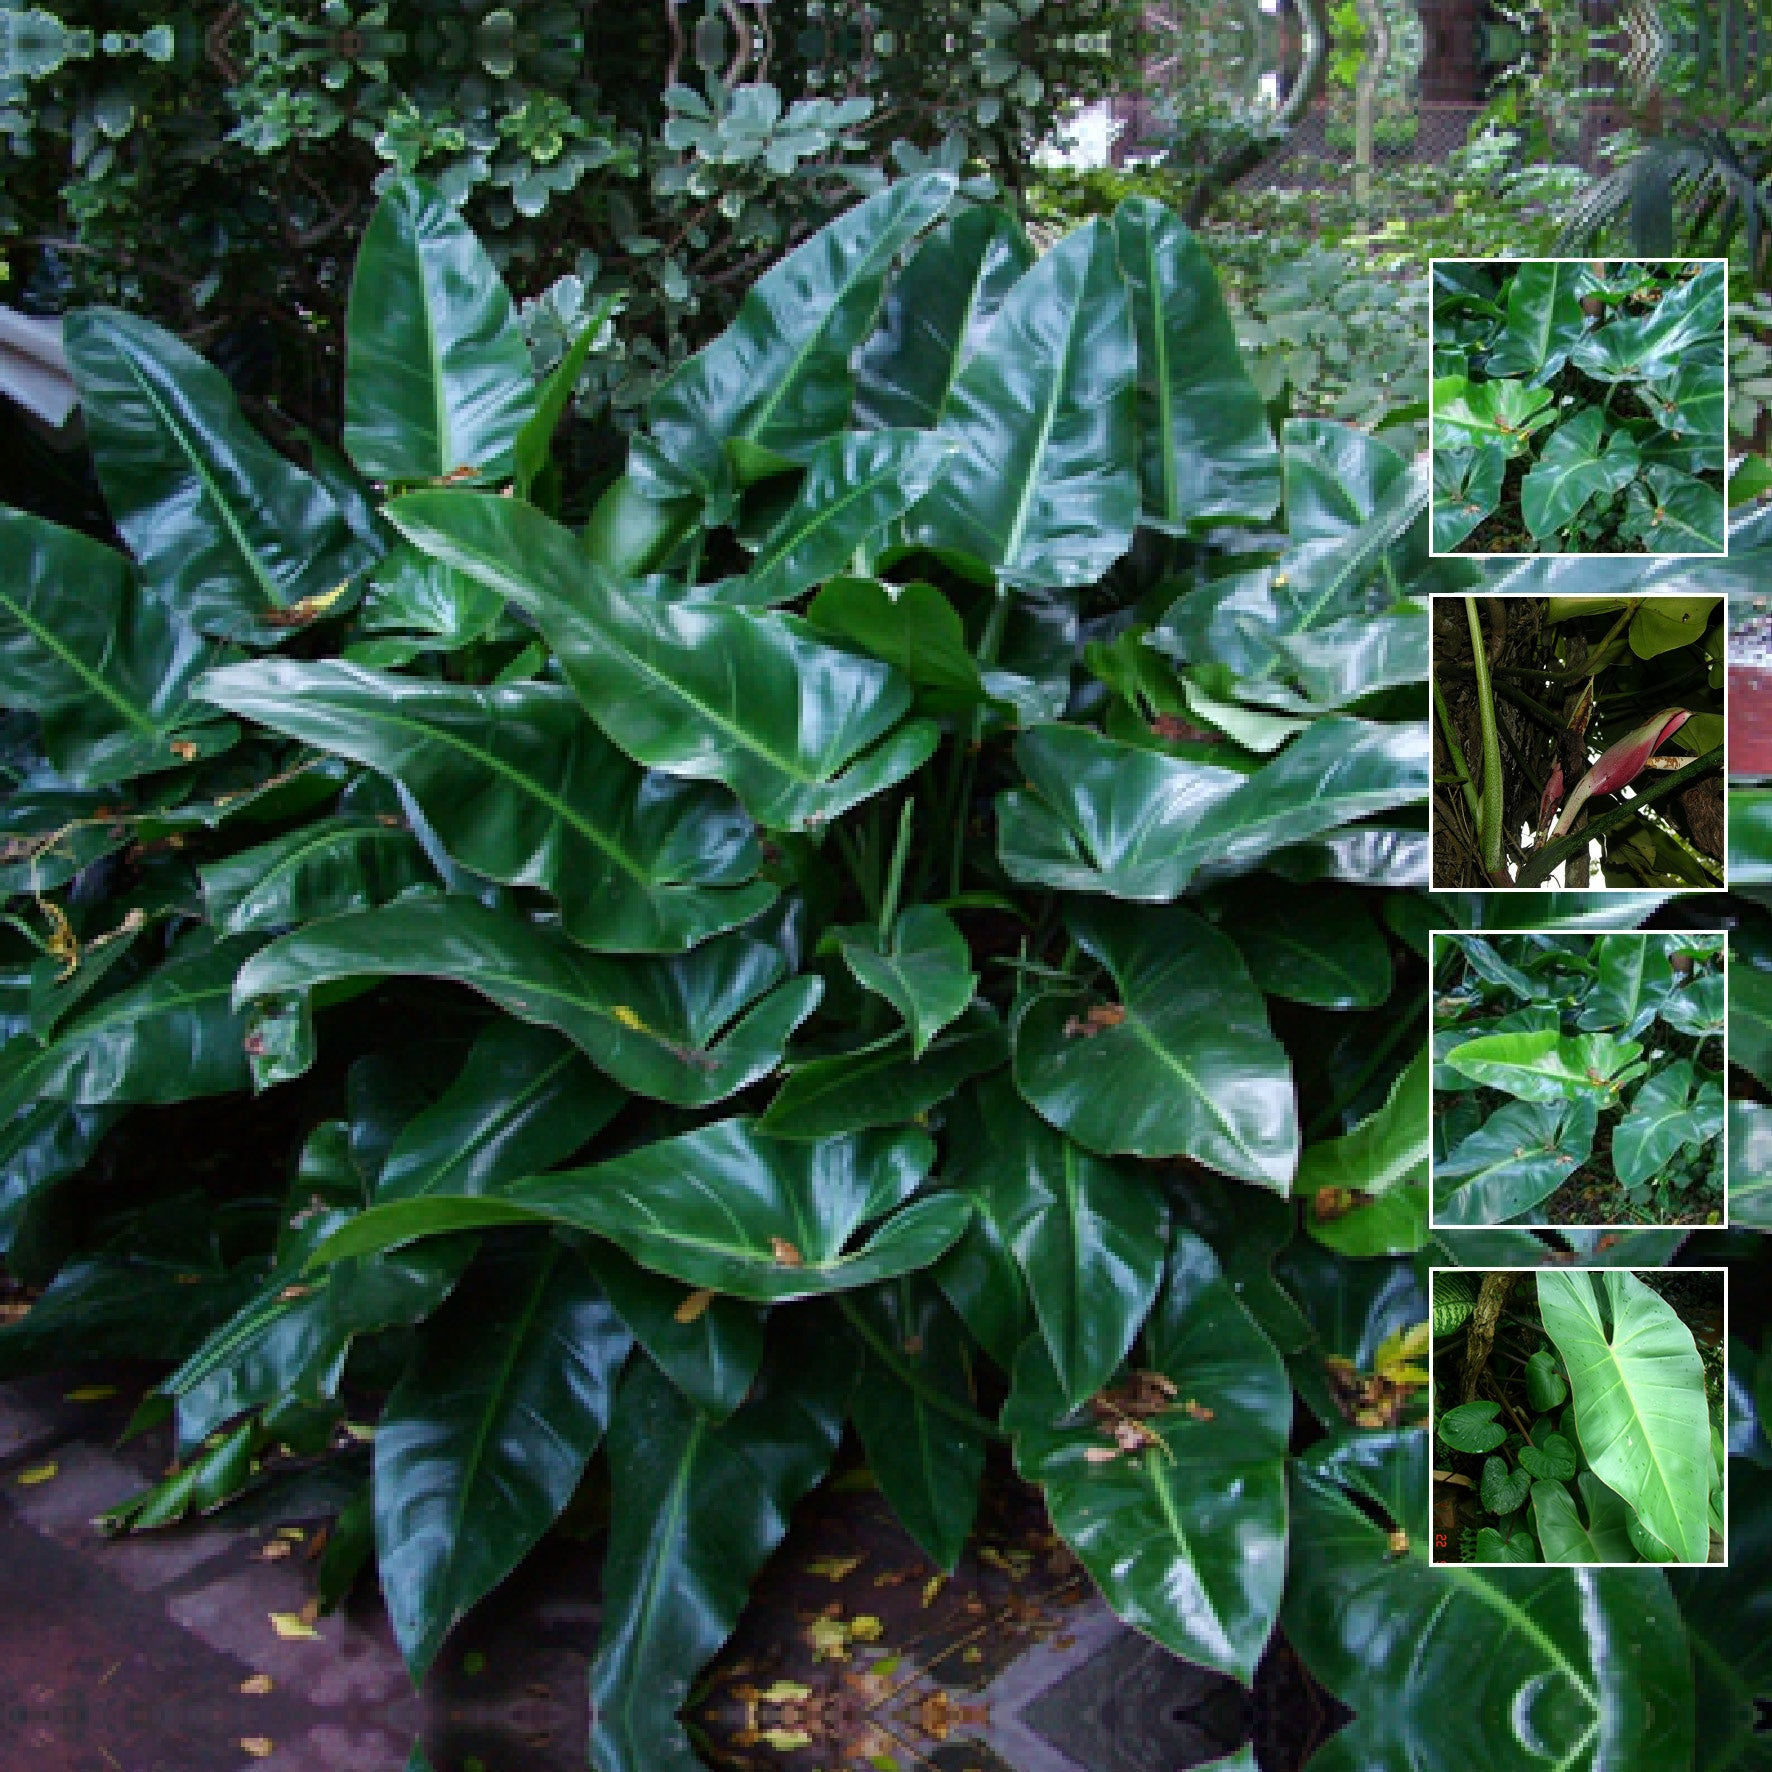 Philodendron Tuxla Seeds. Rare climbing hybrid philodendron variety. Glossy